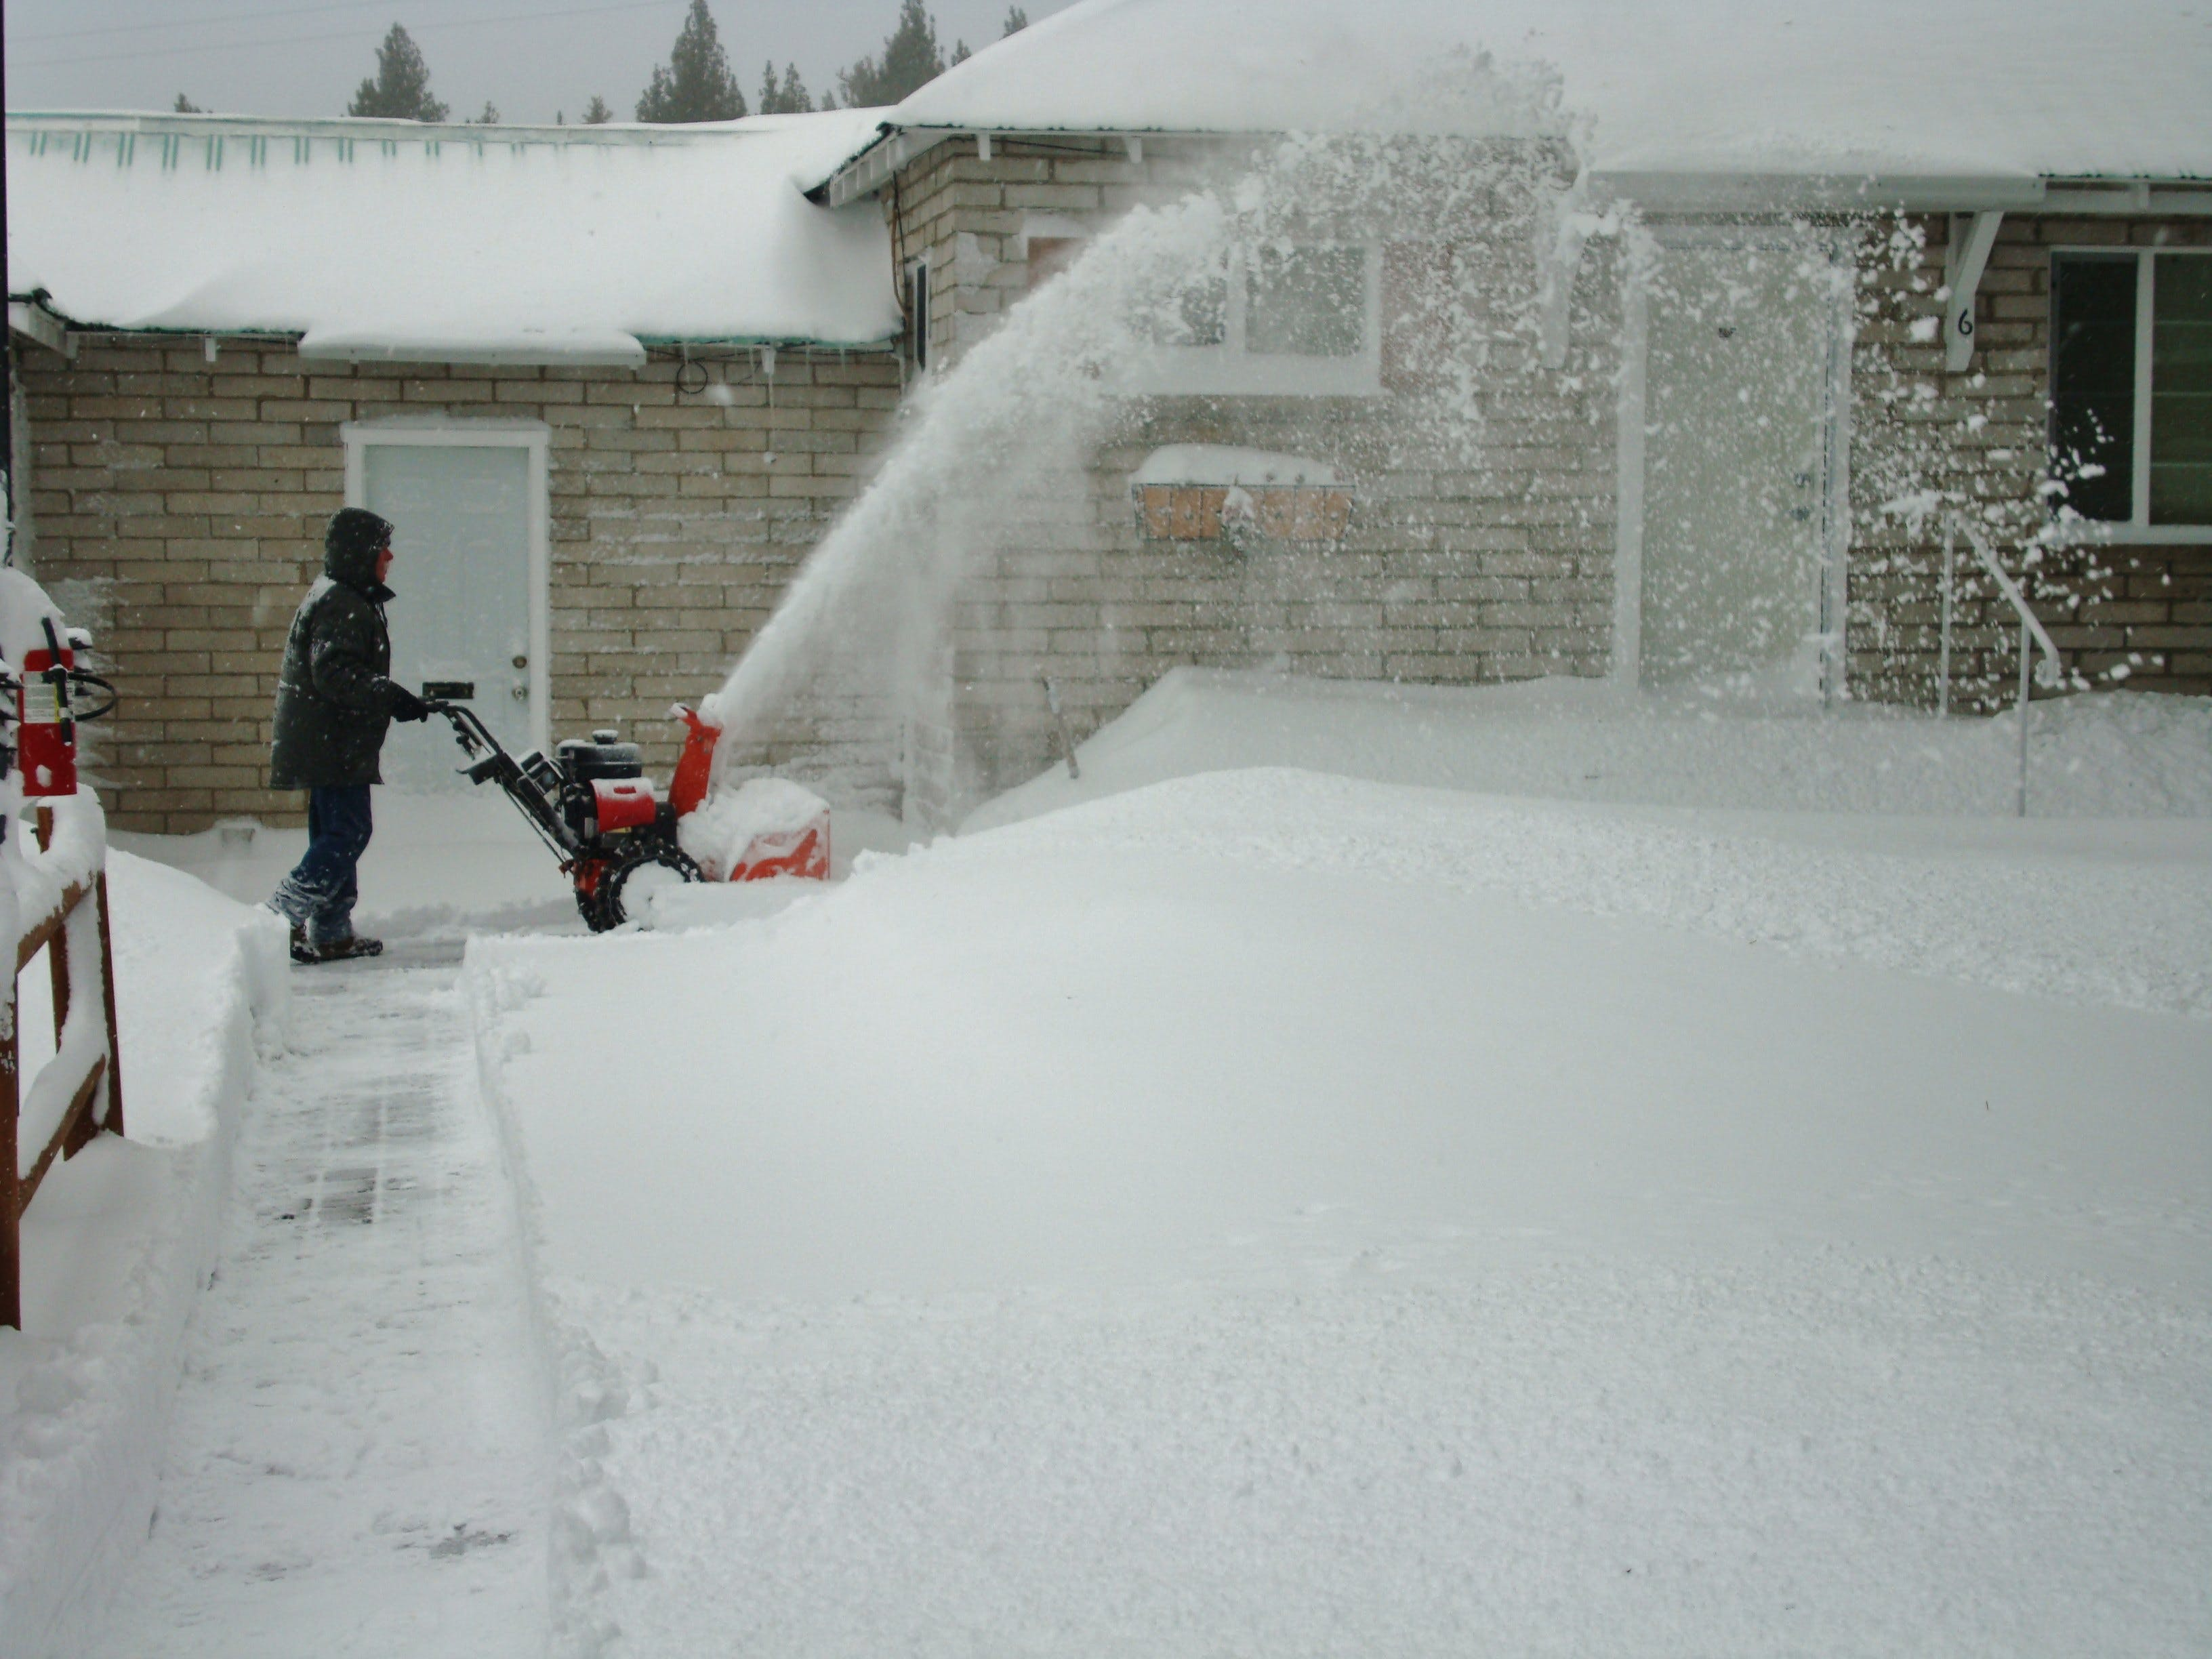 Bob with the snowblower